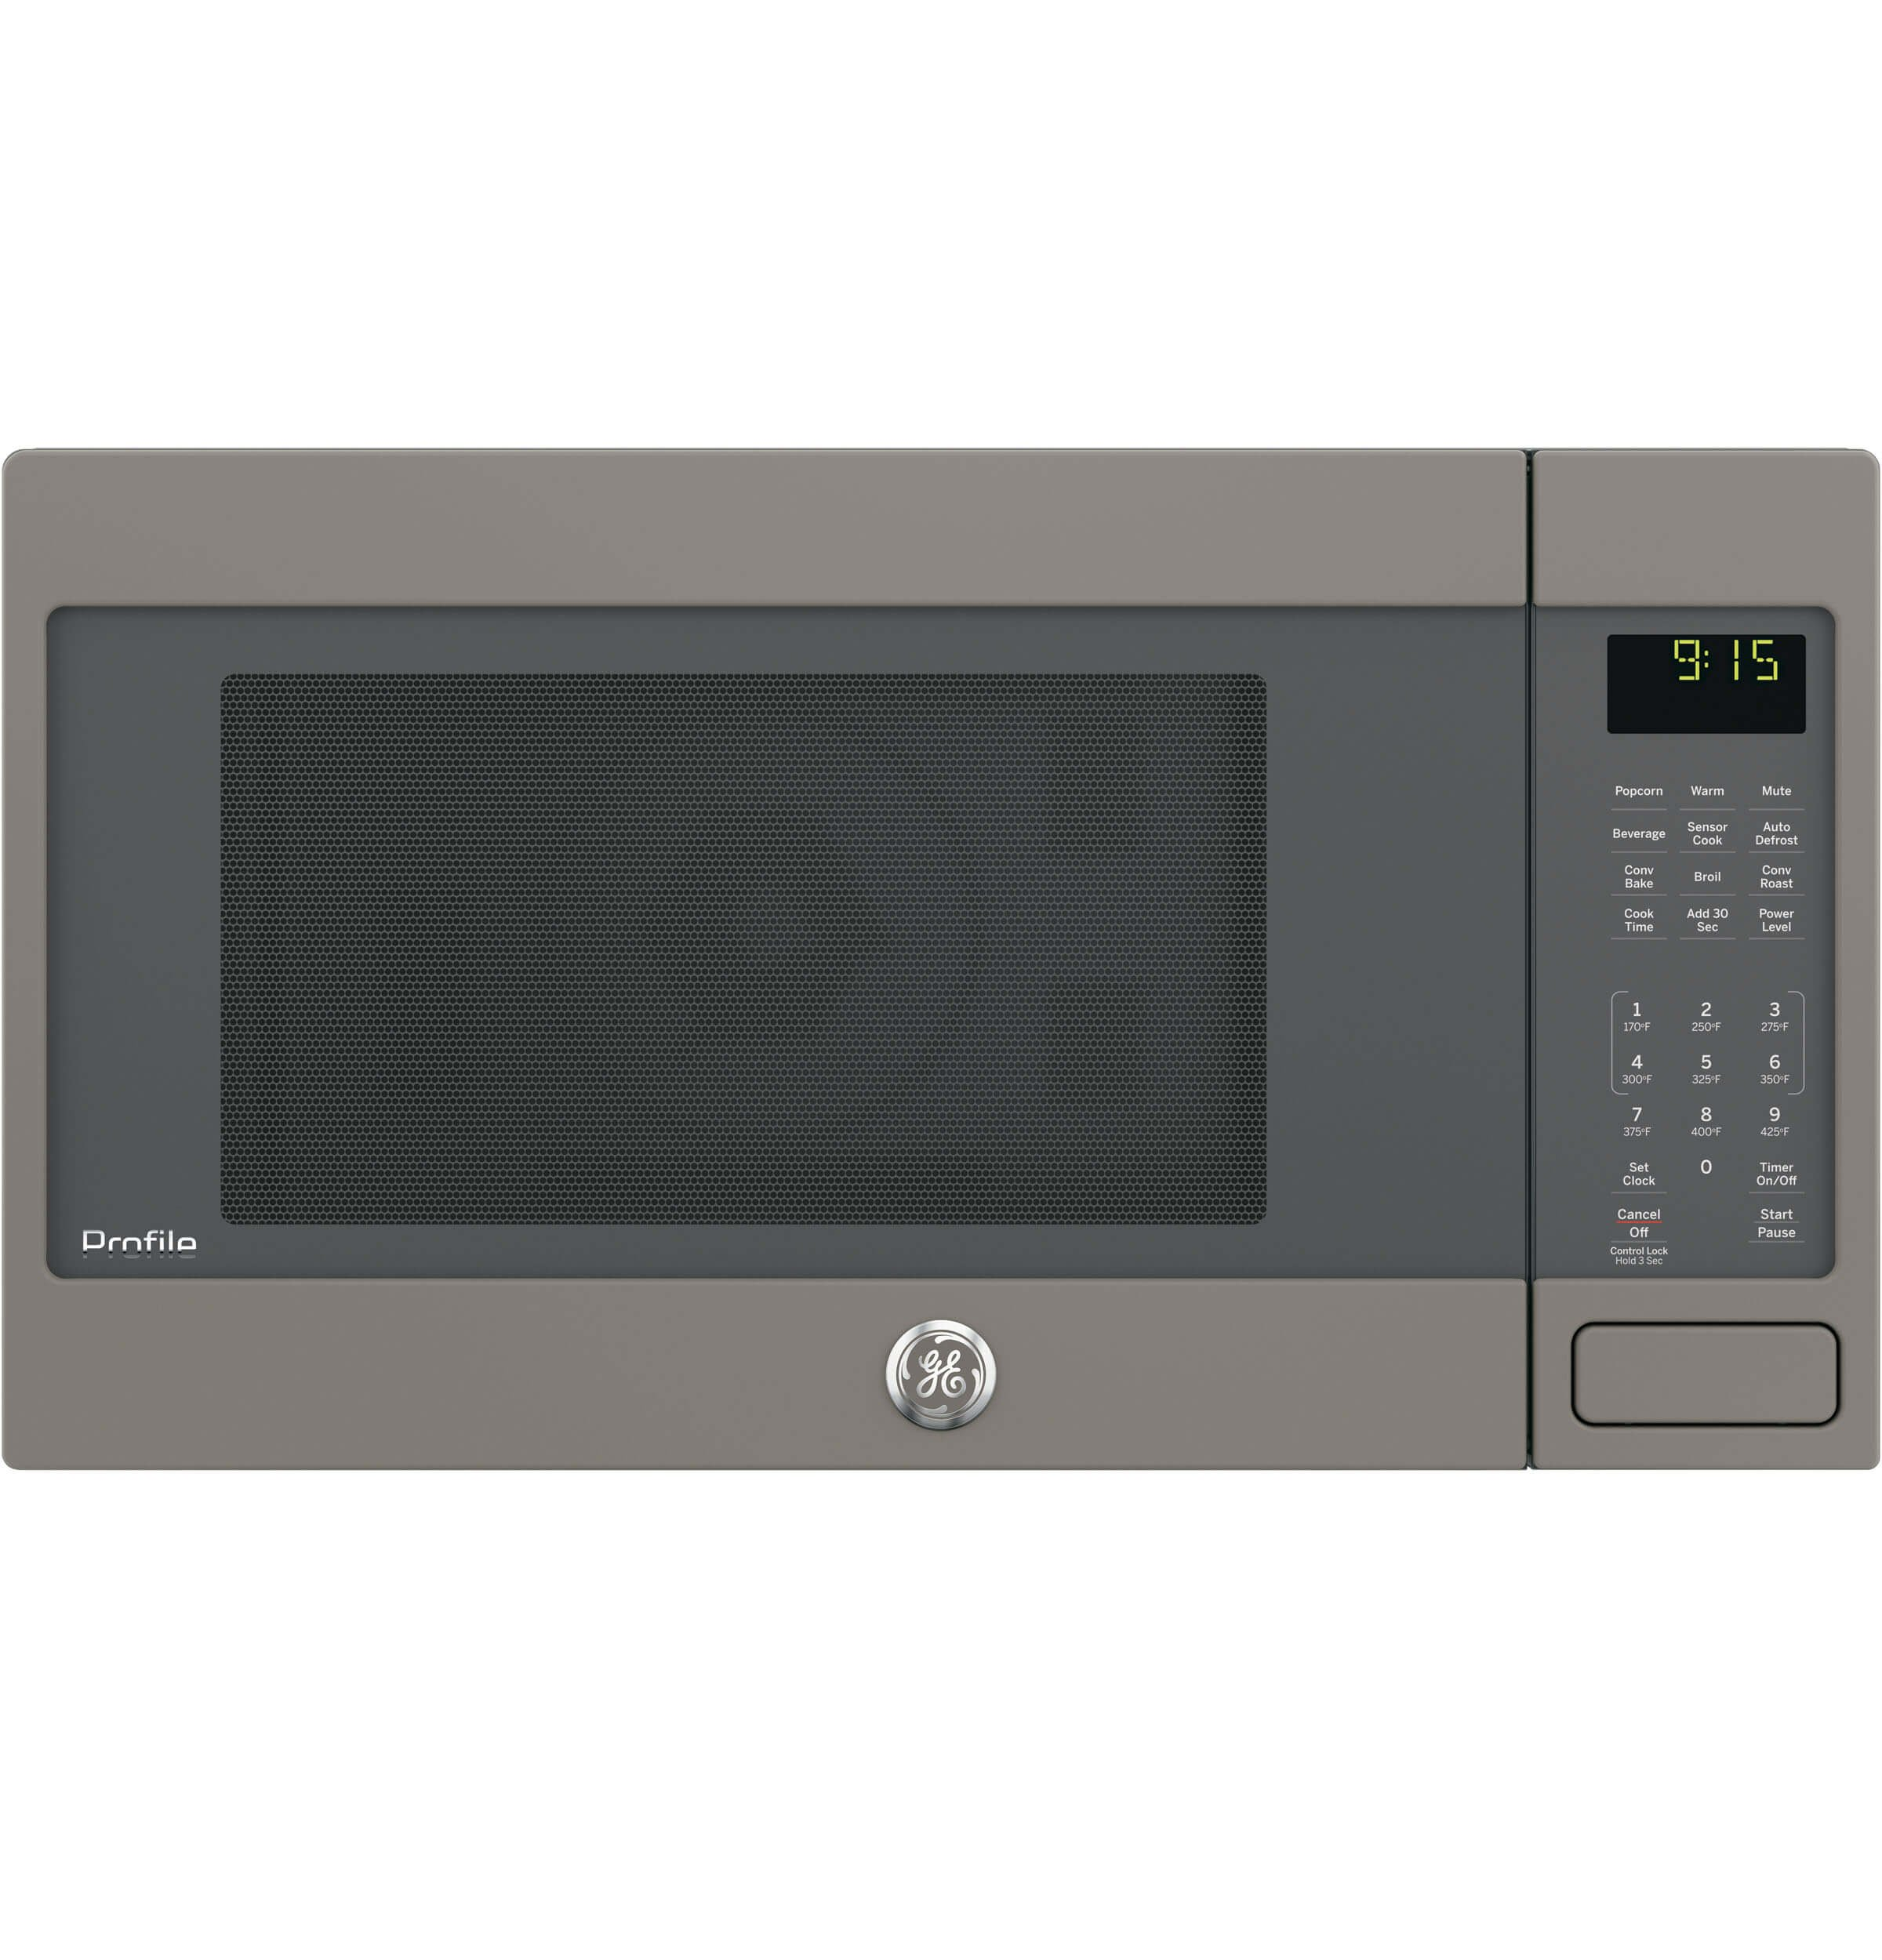 GE PEB9159EJES Microwave Oven